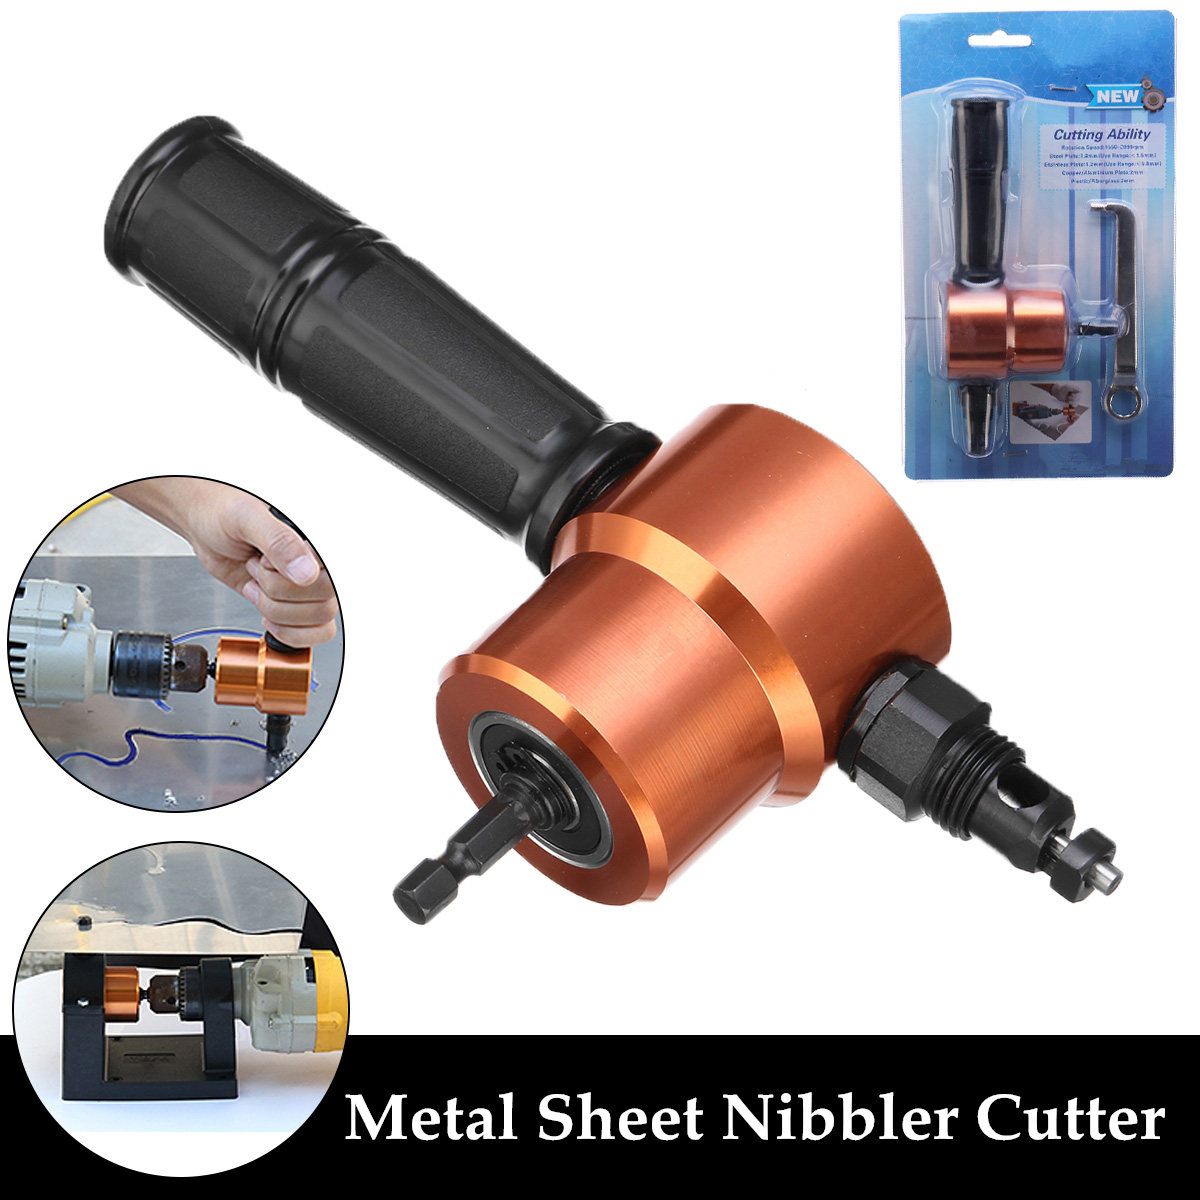 Sheet Metal Nibbler Double Headed Metal Saw Cutter 360 Degree Adjustable Drill Attachment Cutting Tool With Positioning Bracket